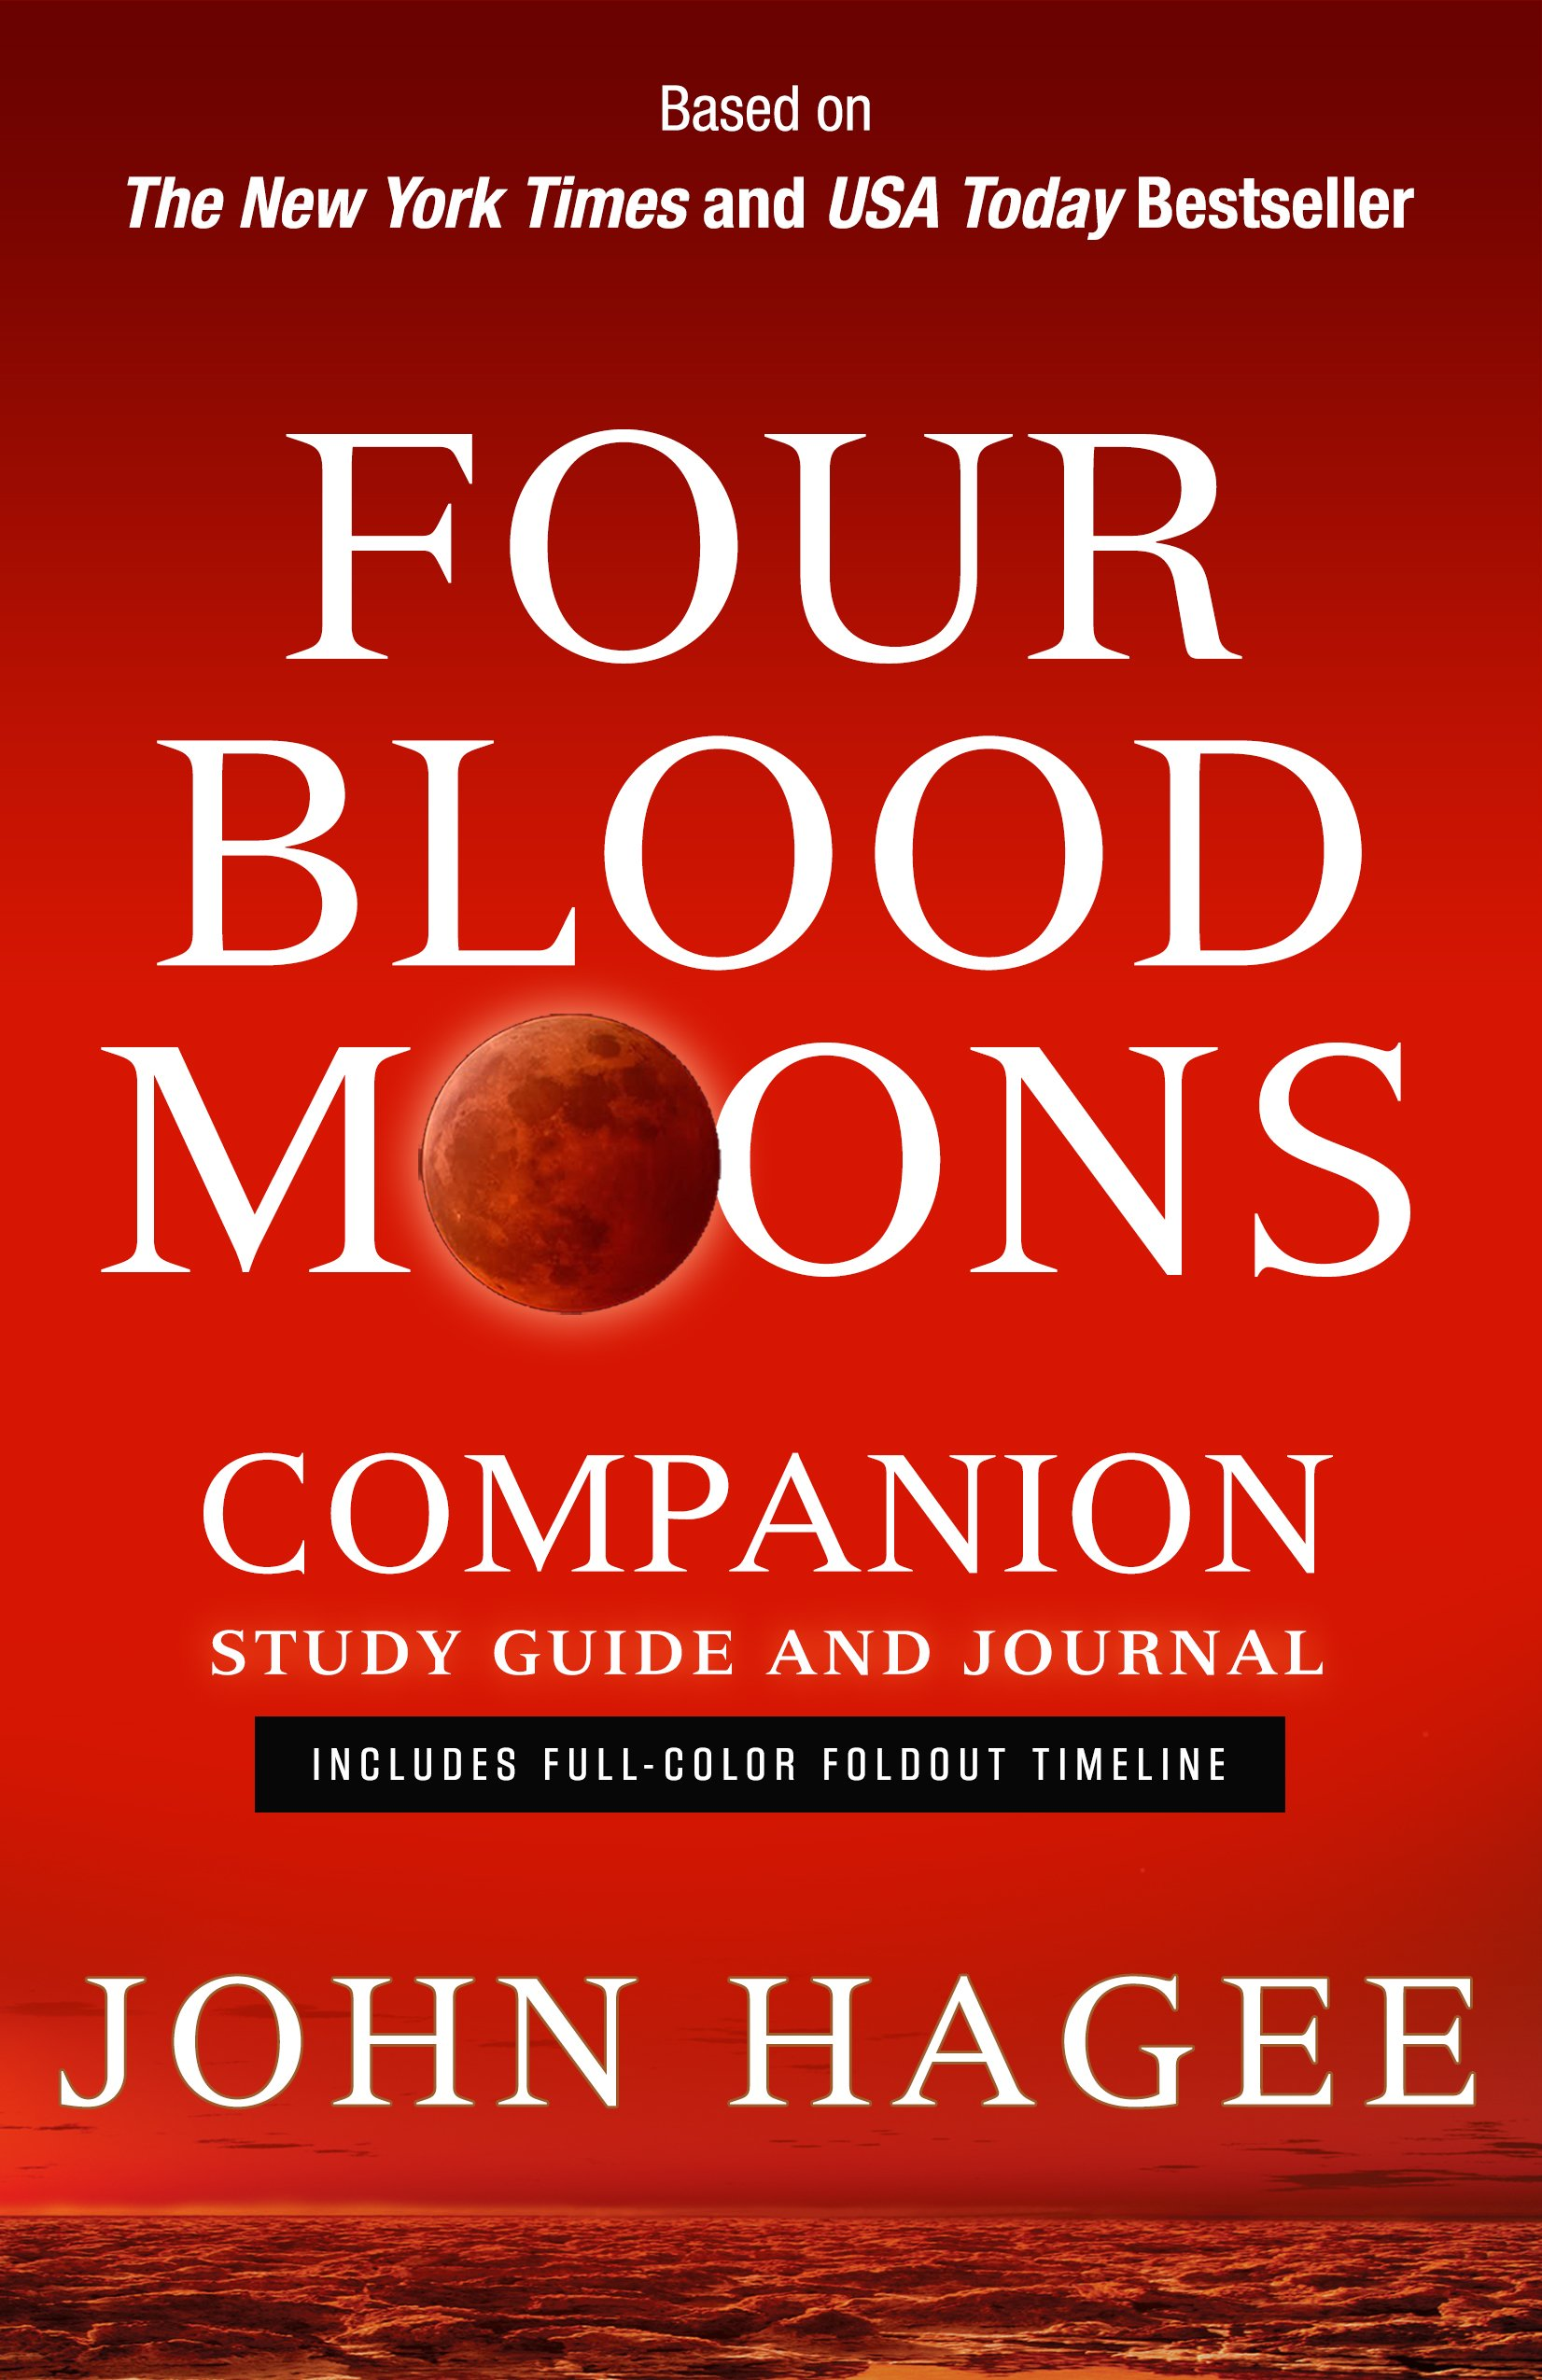 Four Blood Moons Companion Study Guide and Journal: Includes Full-Color  Foldout Timeline: John Hagee: 9781617953873: Amazon.com: Books